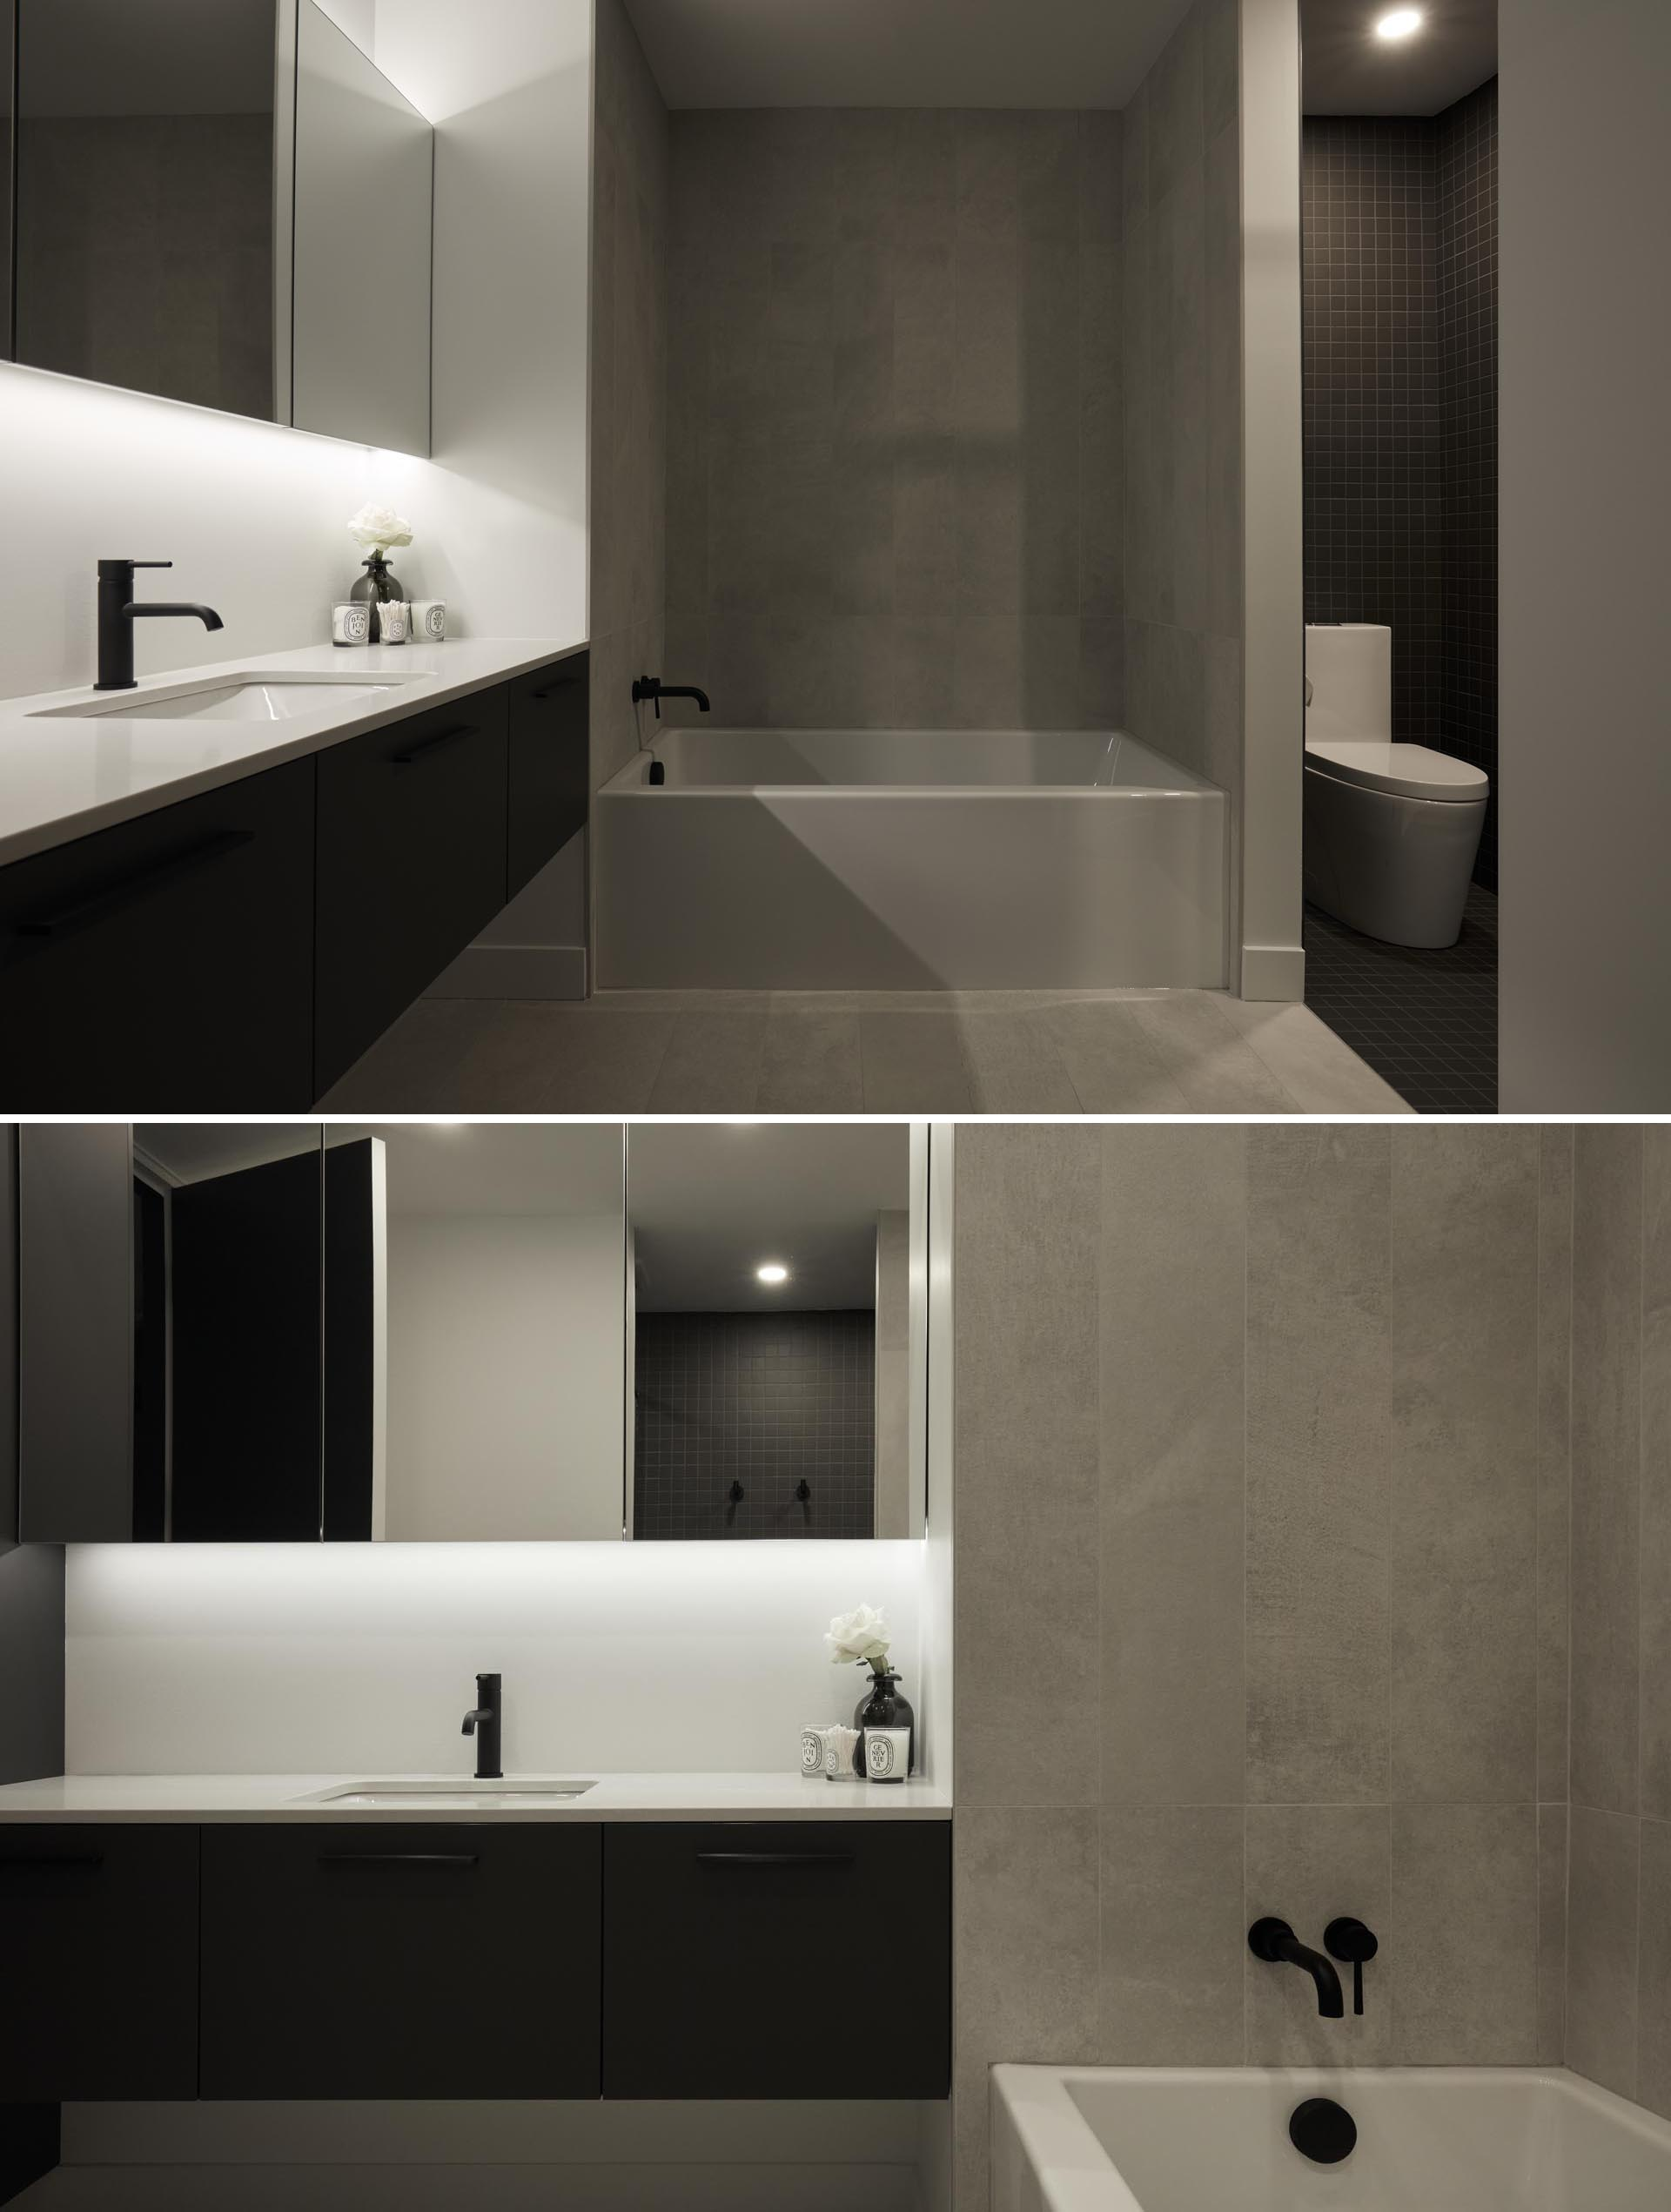 The design of this modern bathroom has been separated into zones. The light zone combines the vanity, the medicine cabinet, and the bath, while the dark zone combines the toilet and a shower with built-in shelving niche.